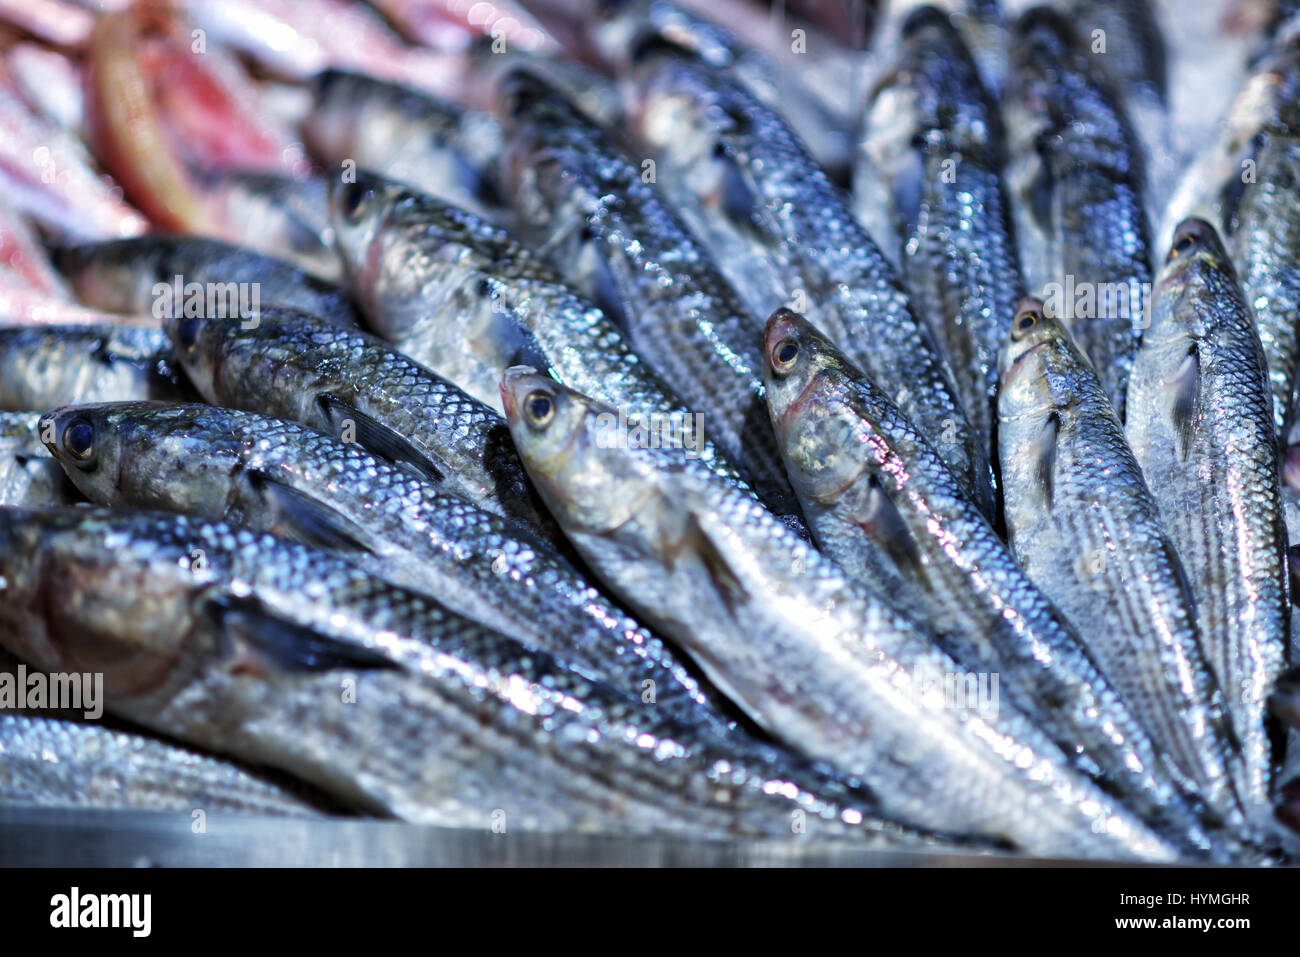 Seafood on ice at the fish market - Stock Image